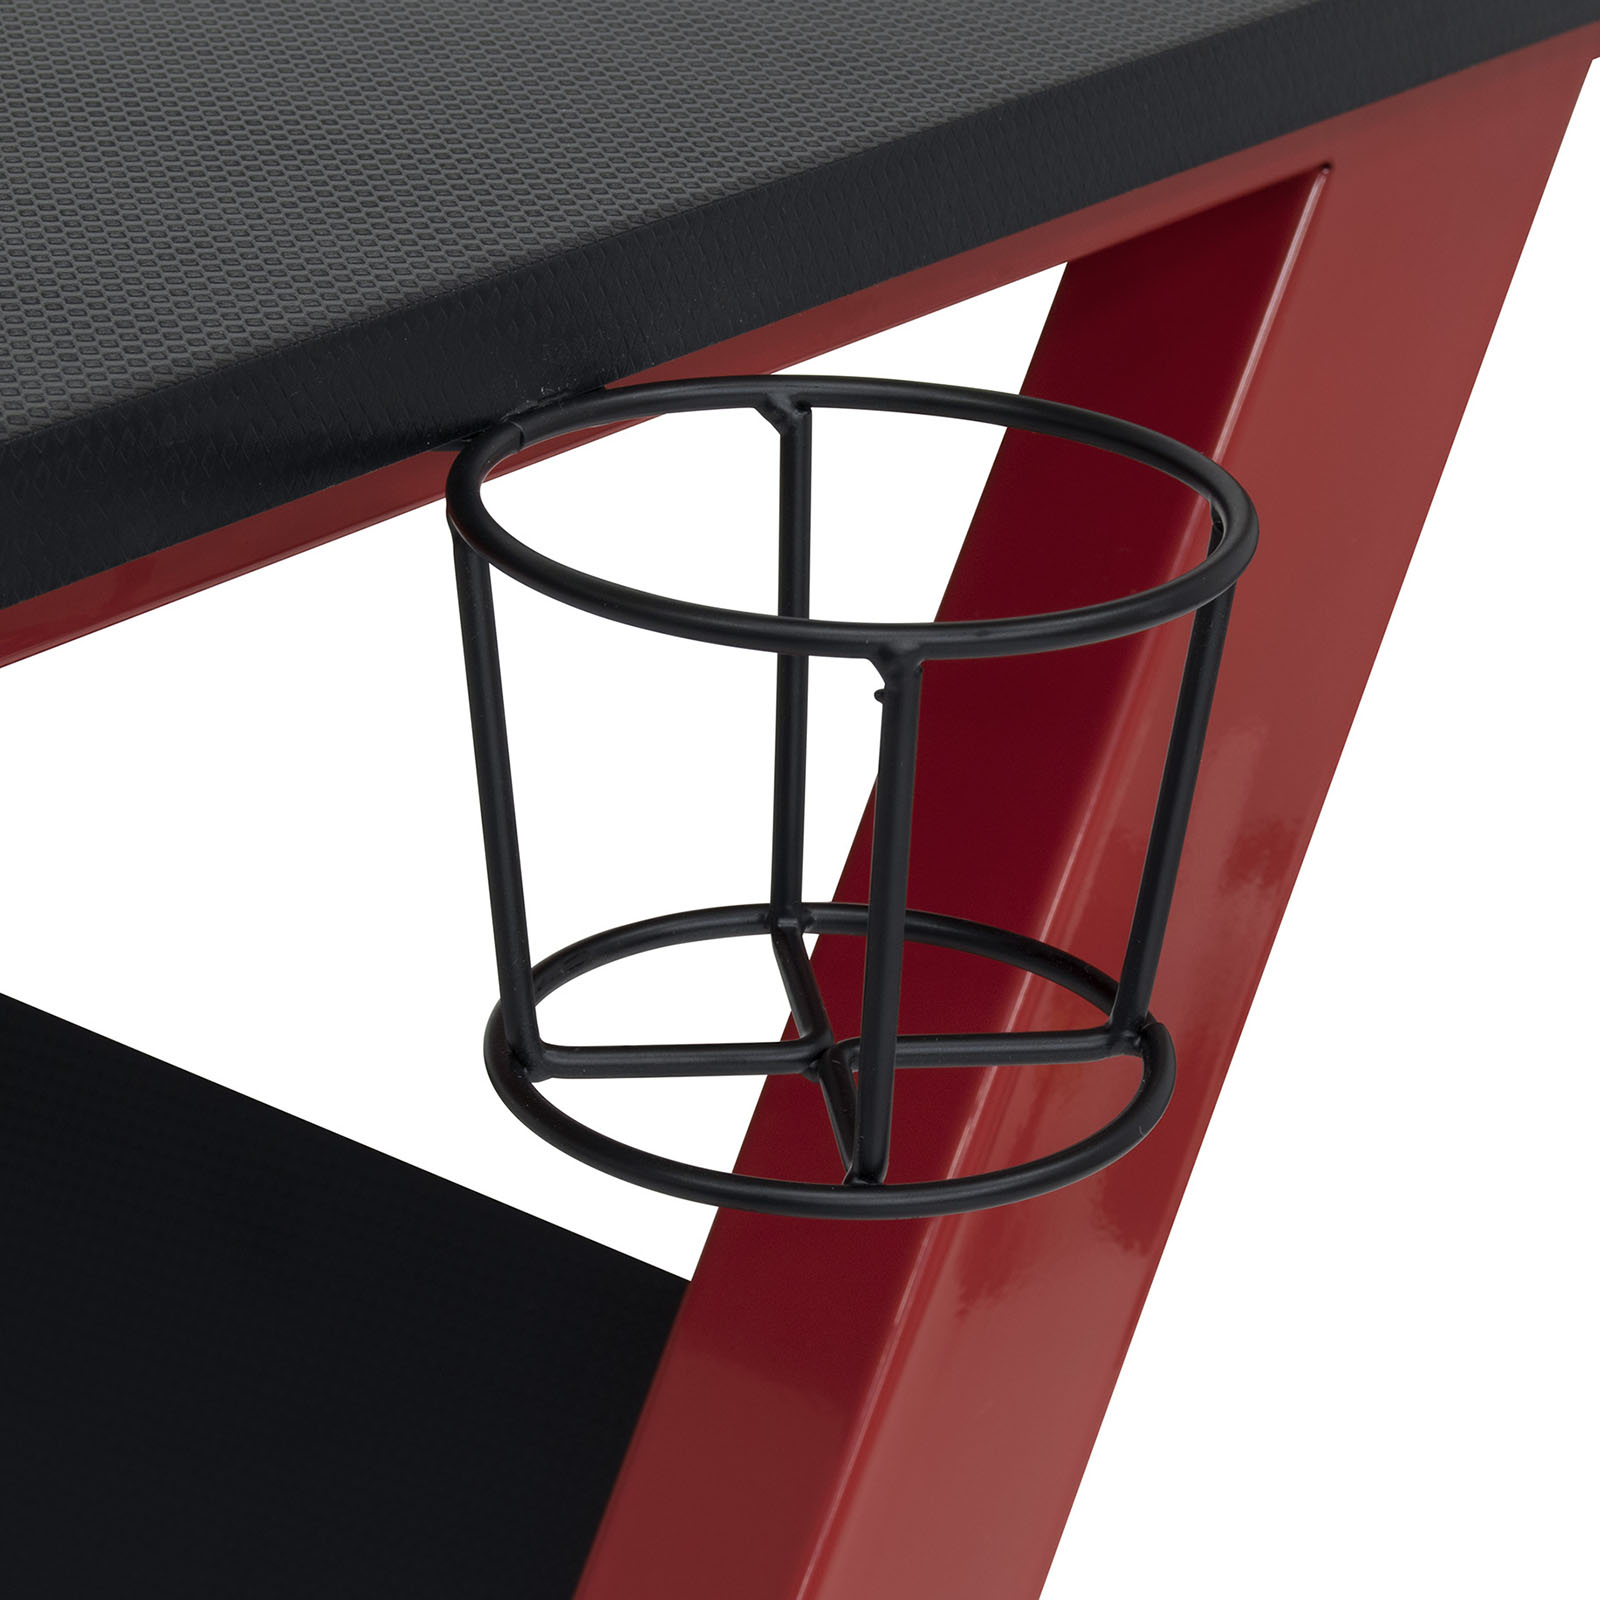 51257 Overlord Desk detail4b